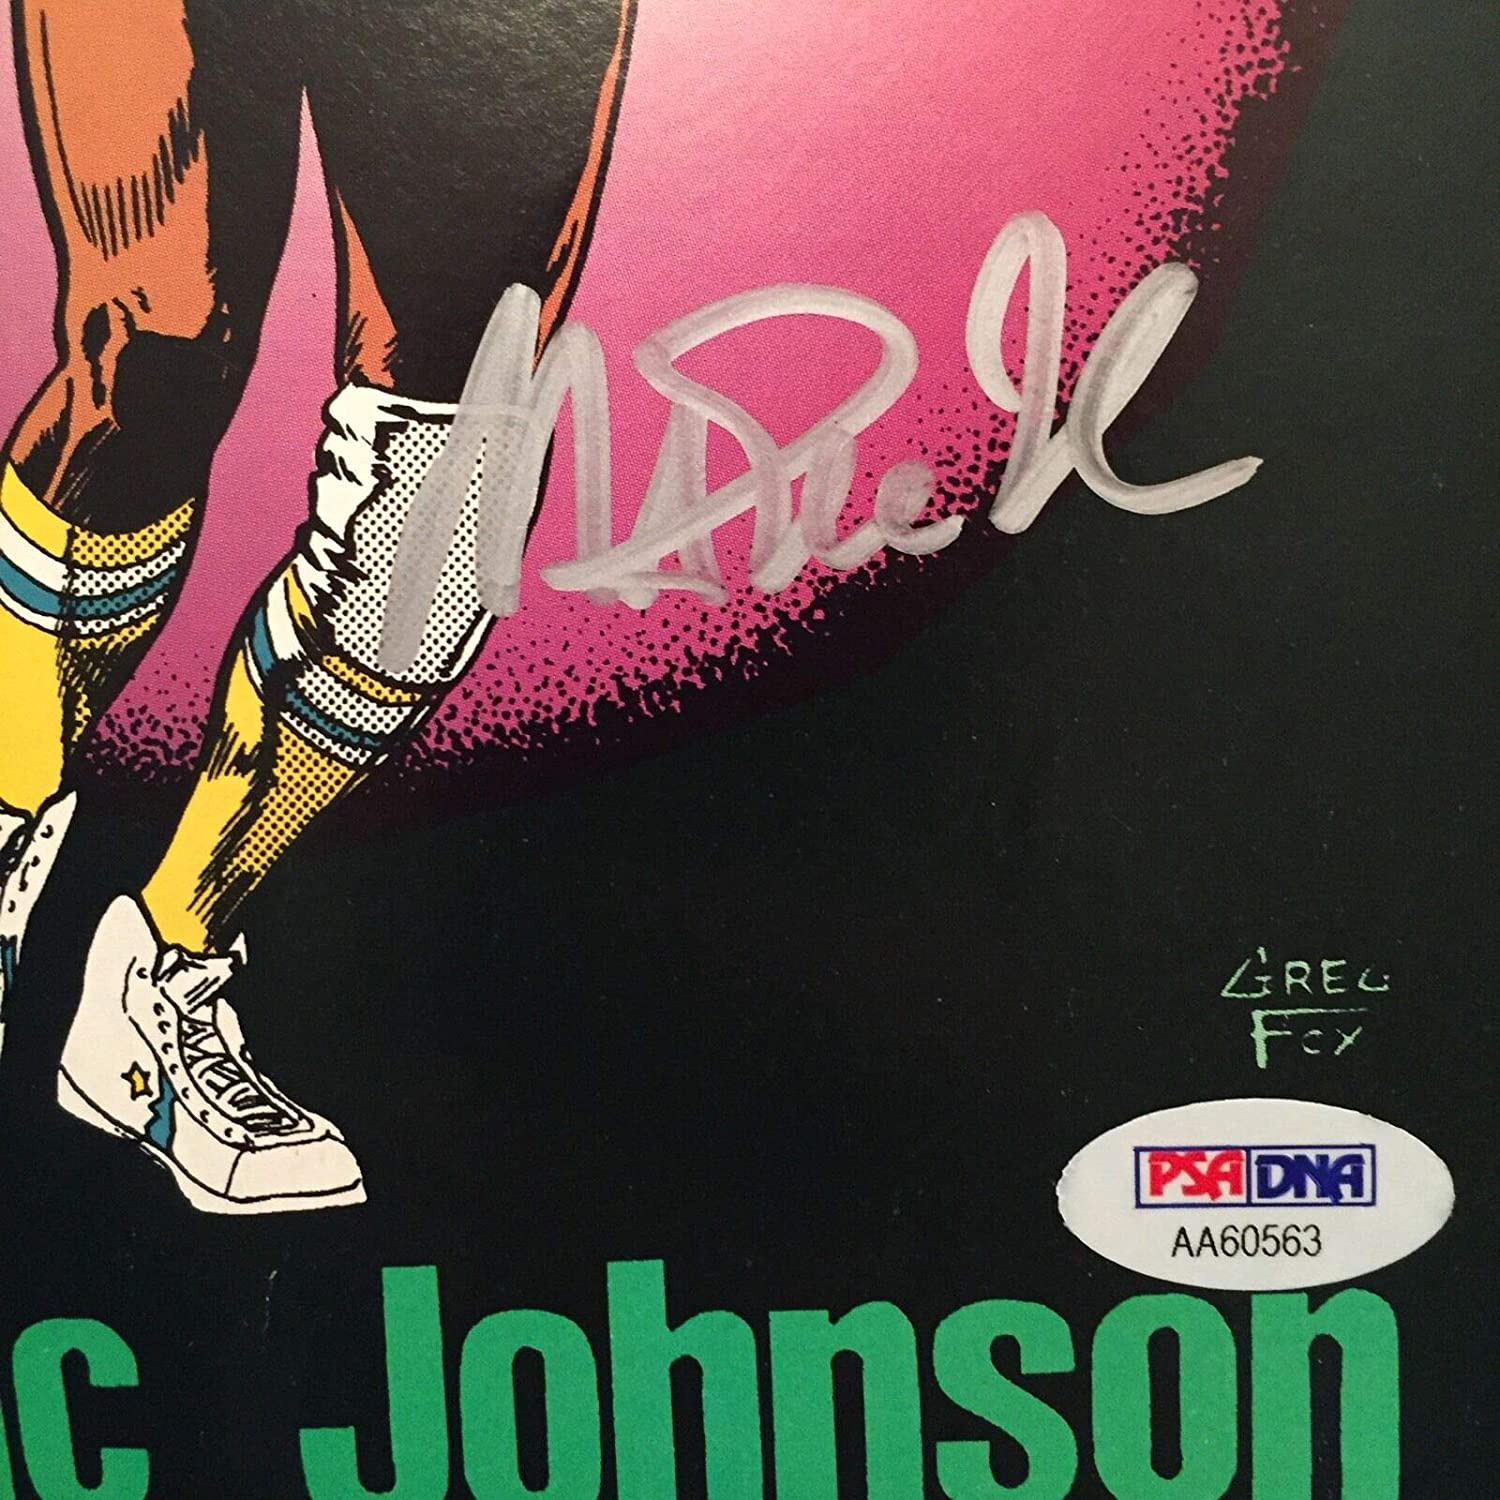 Magic Johnson Autographed Signed Memorabilia Sports Basketball Superstars Comic Book Magazine - PSA/DNA at Amazons Sports Collectibles Store